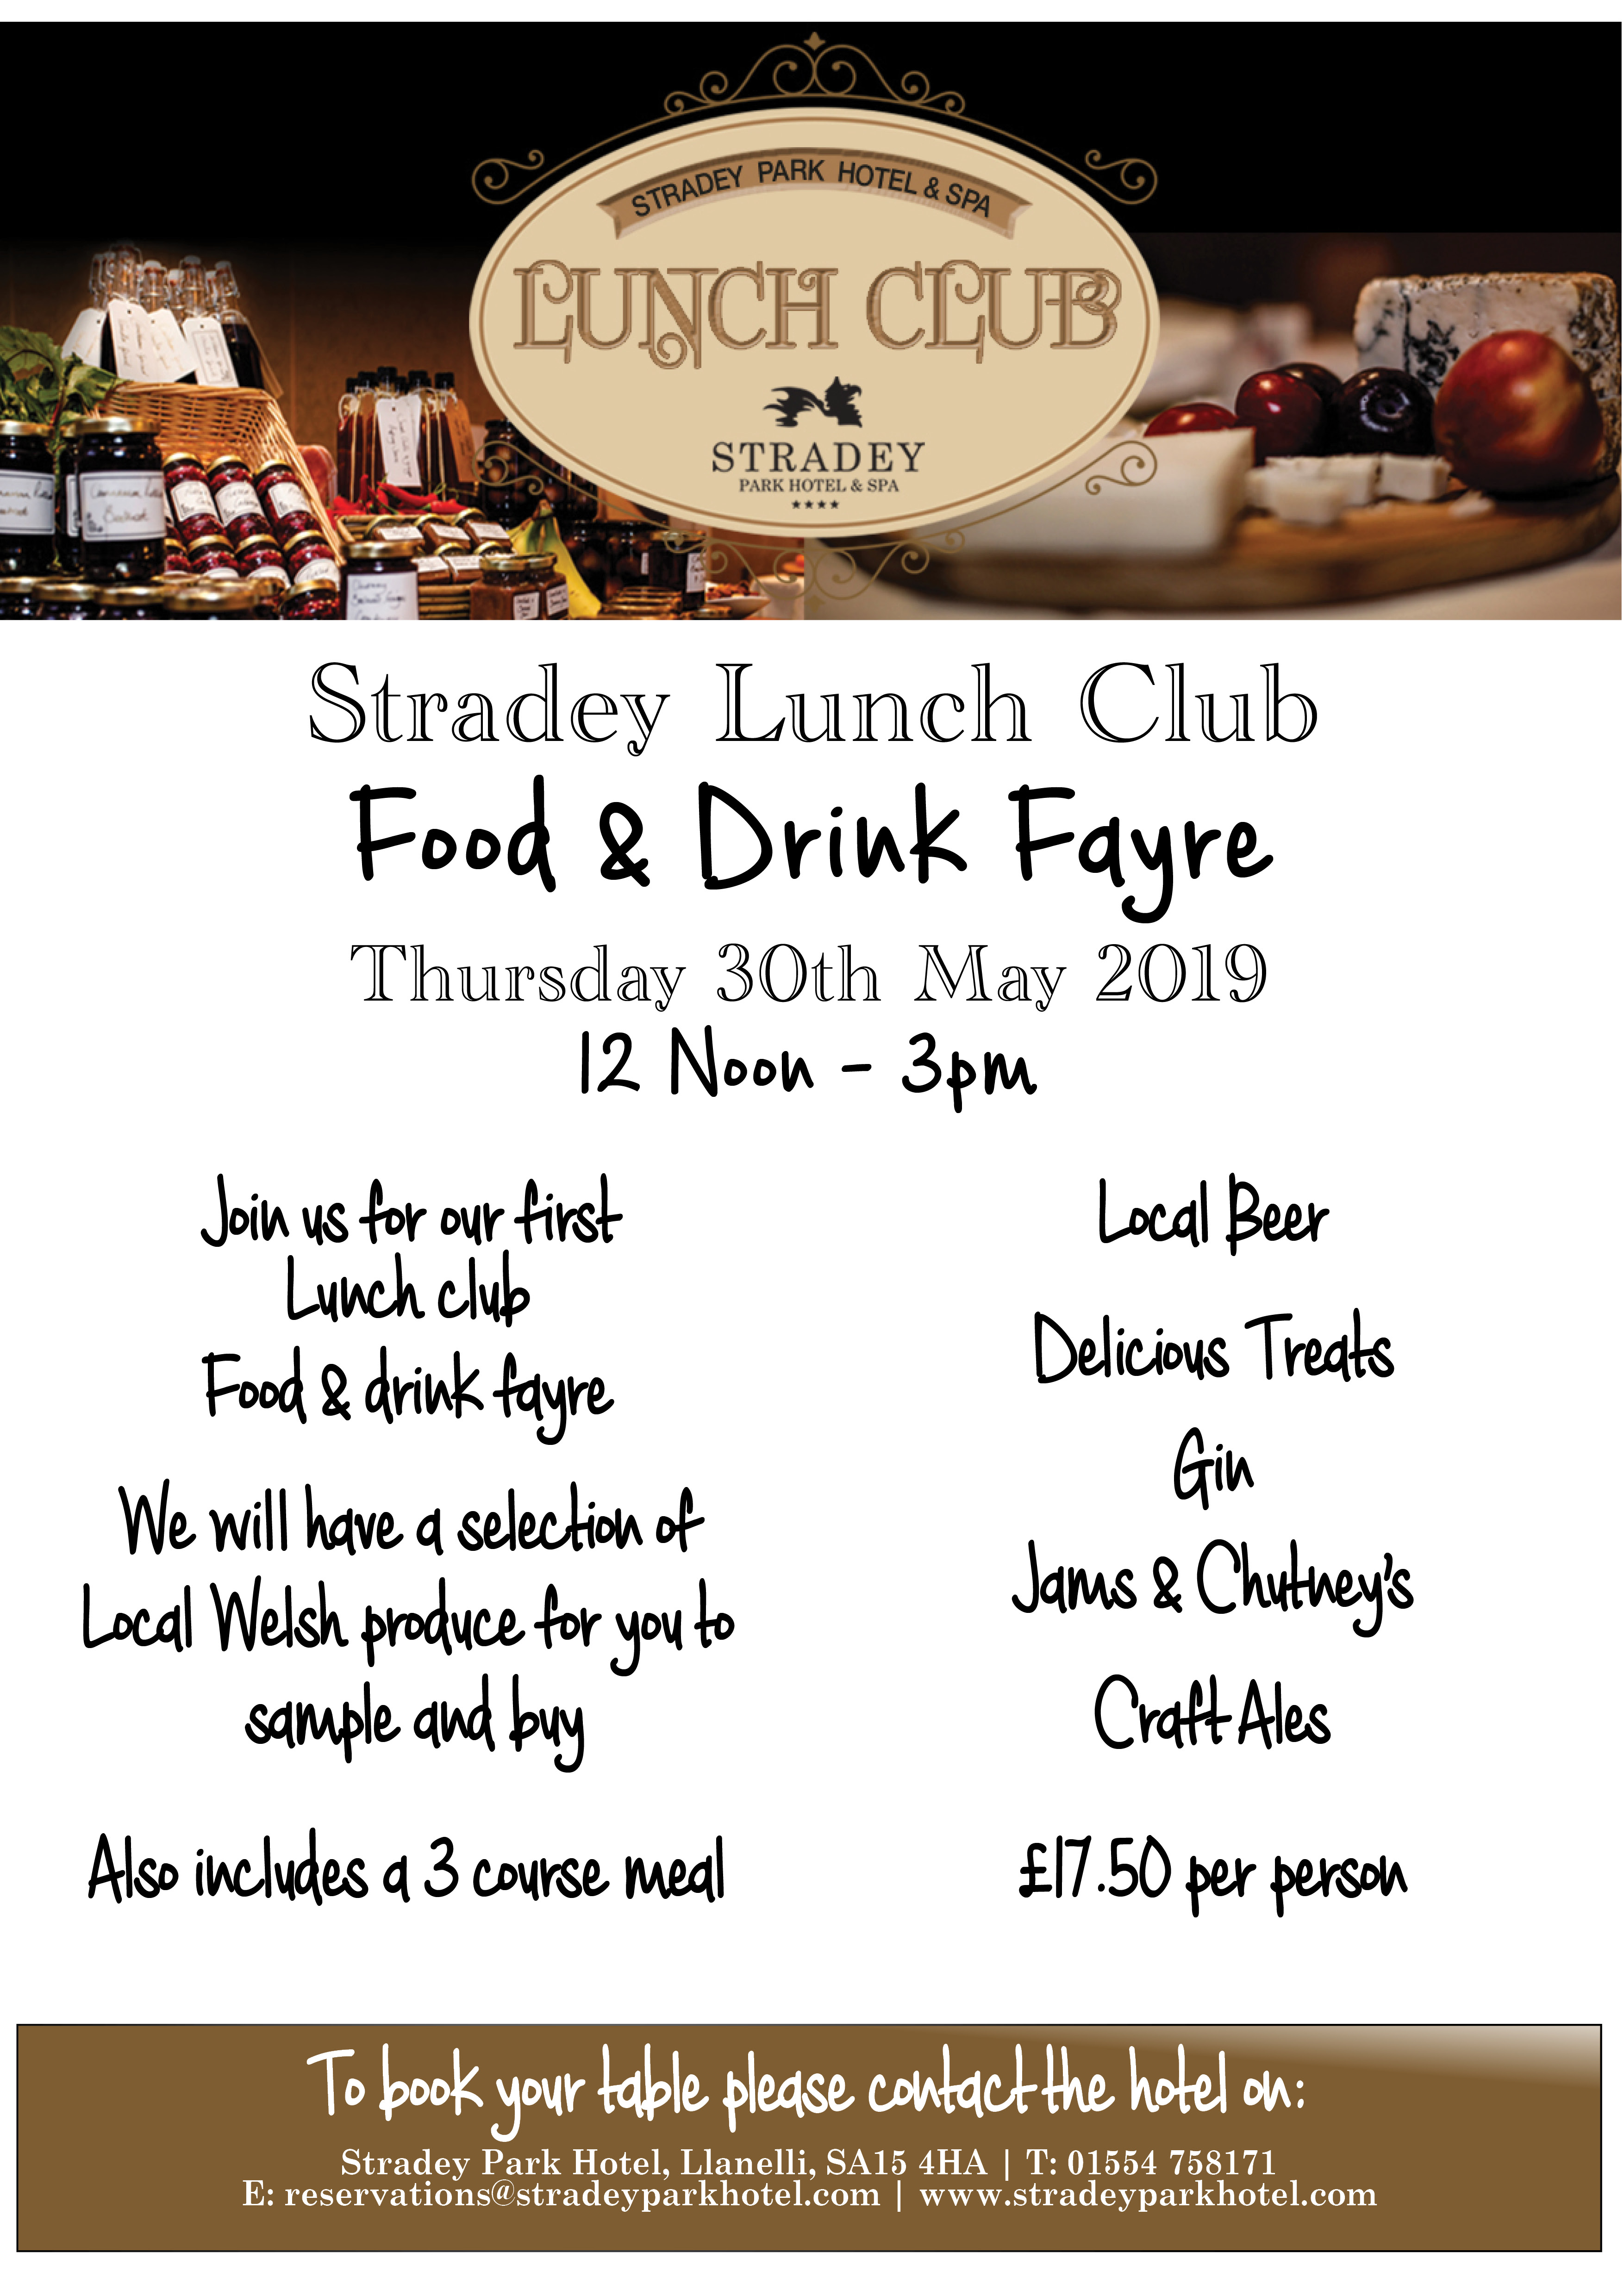 Lunch Club Food & Drink Fayre